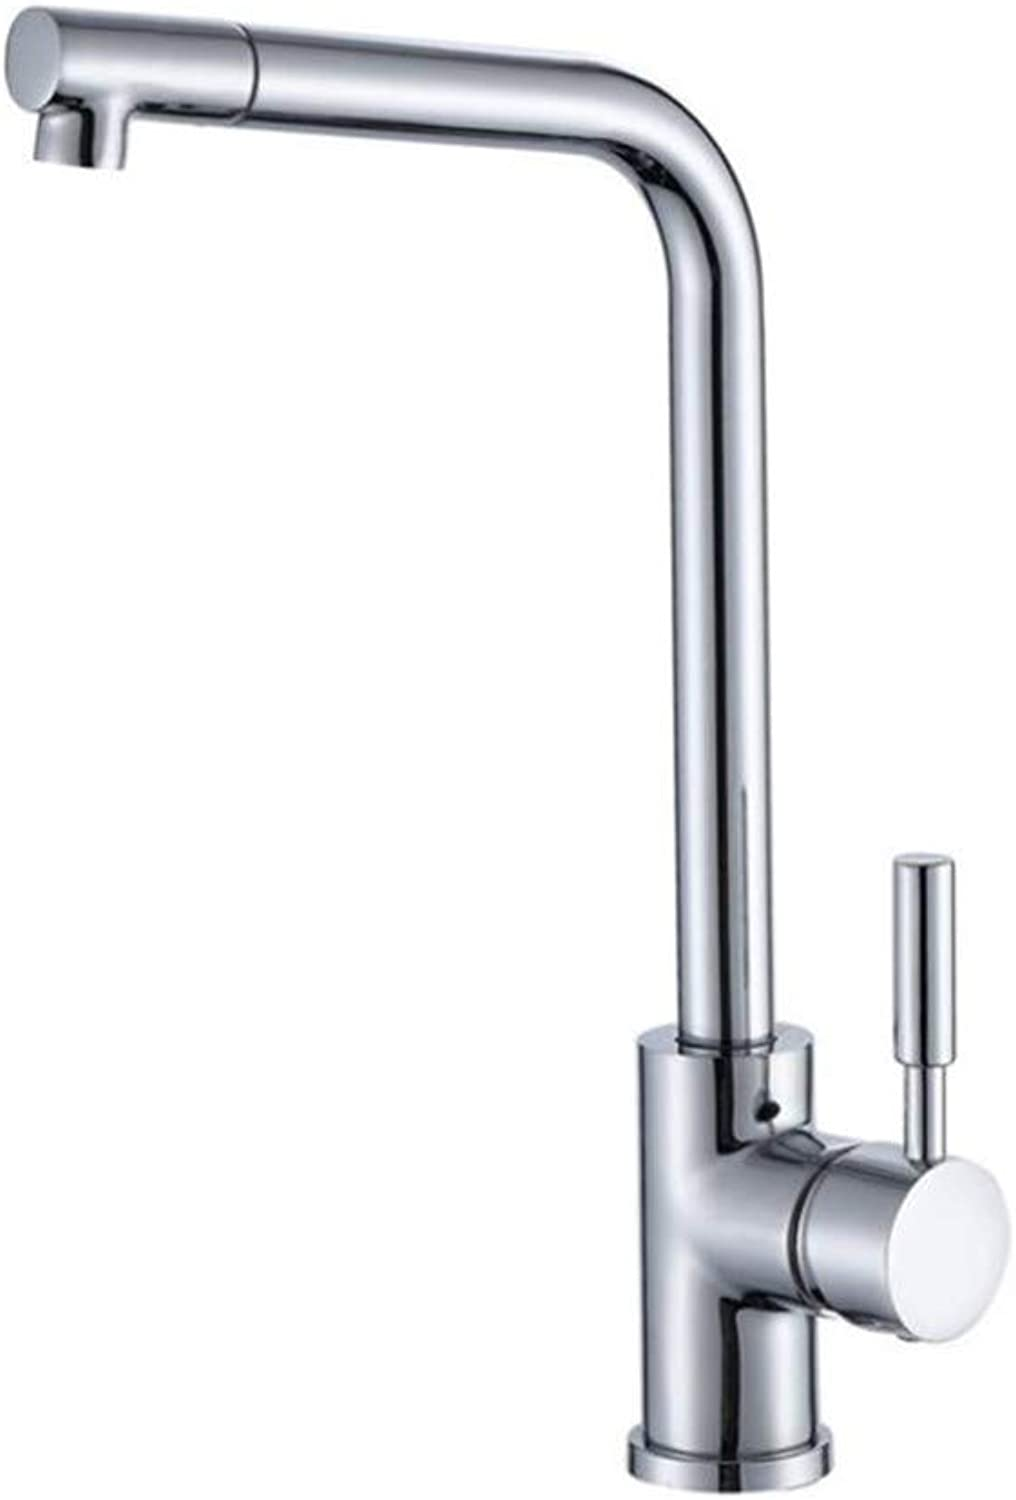 Bathroom Sink Basin Lever Mixer Tap Round Tee Wire Drawing Kitchen Faucet Stainless Steel Sink Faucet Cold and Hot Water Faucet